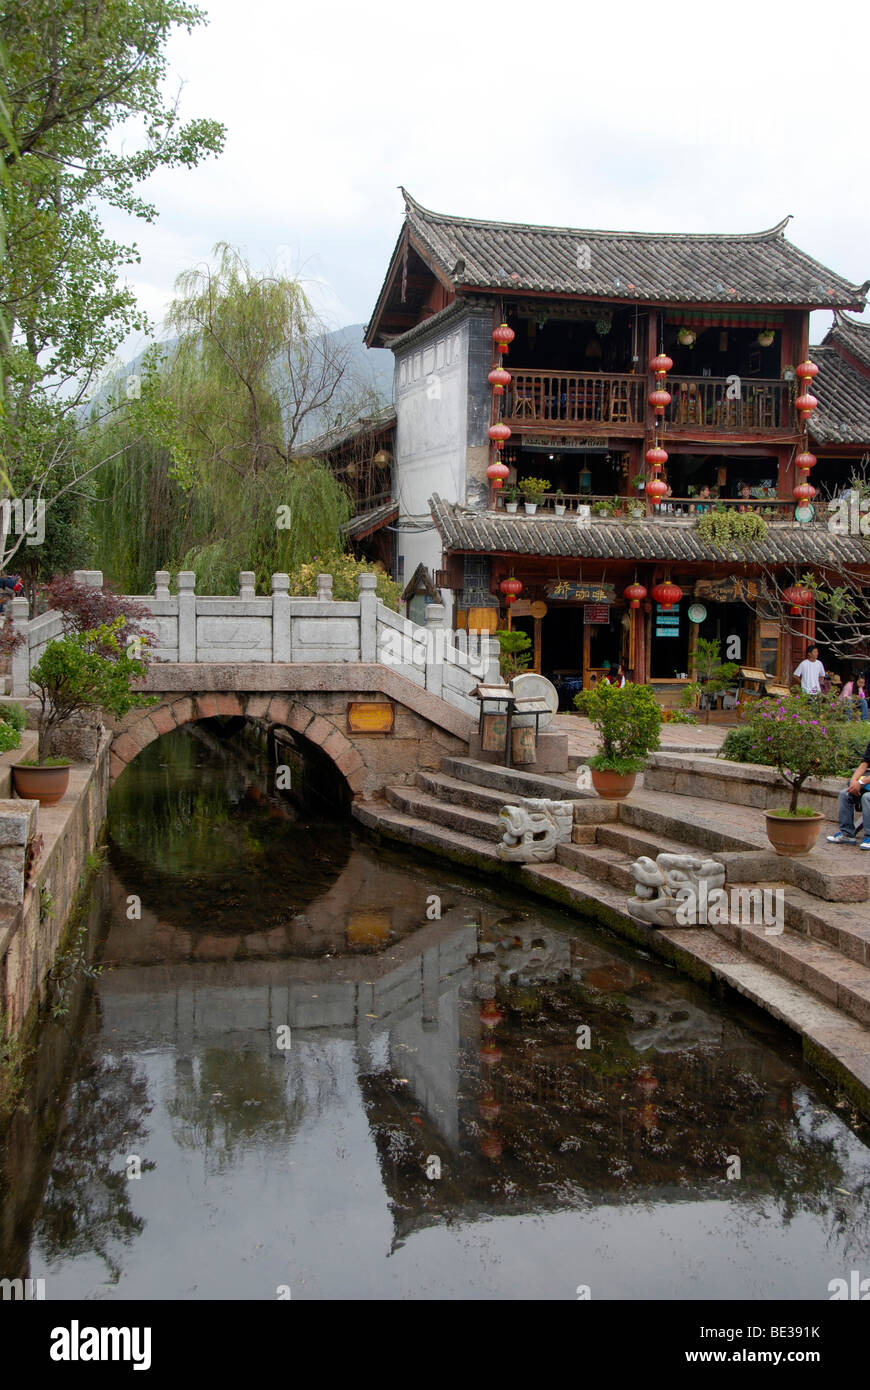 Canal, bridge, old house, historic centre of Lijiang, UNESCO World Heritage Site, Yunnan Province, People's - Stock Image